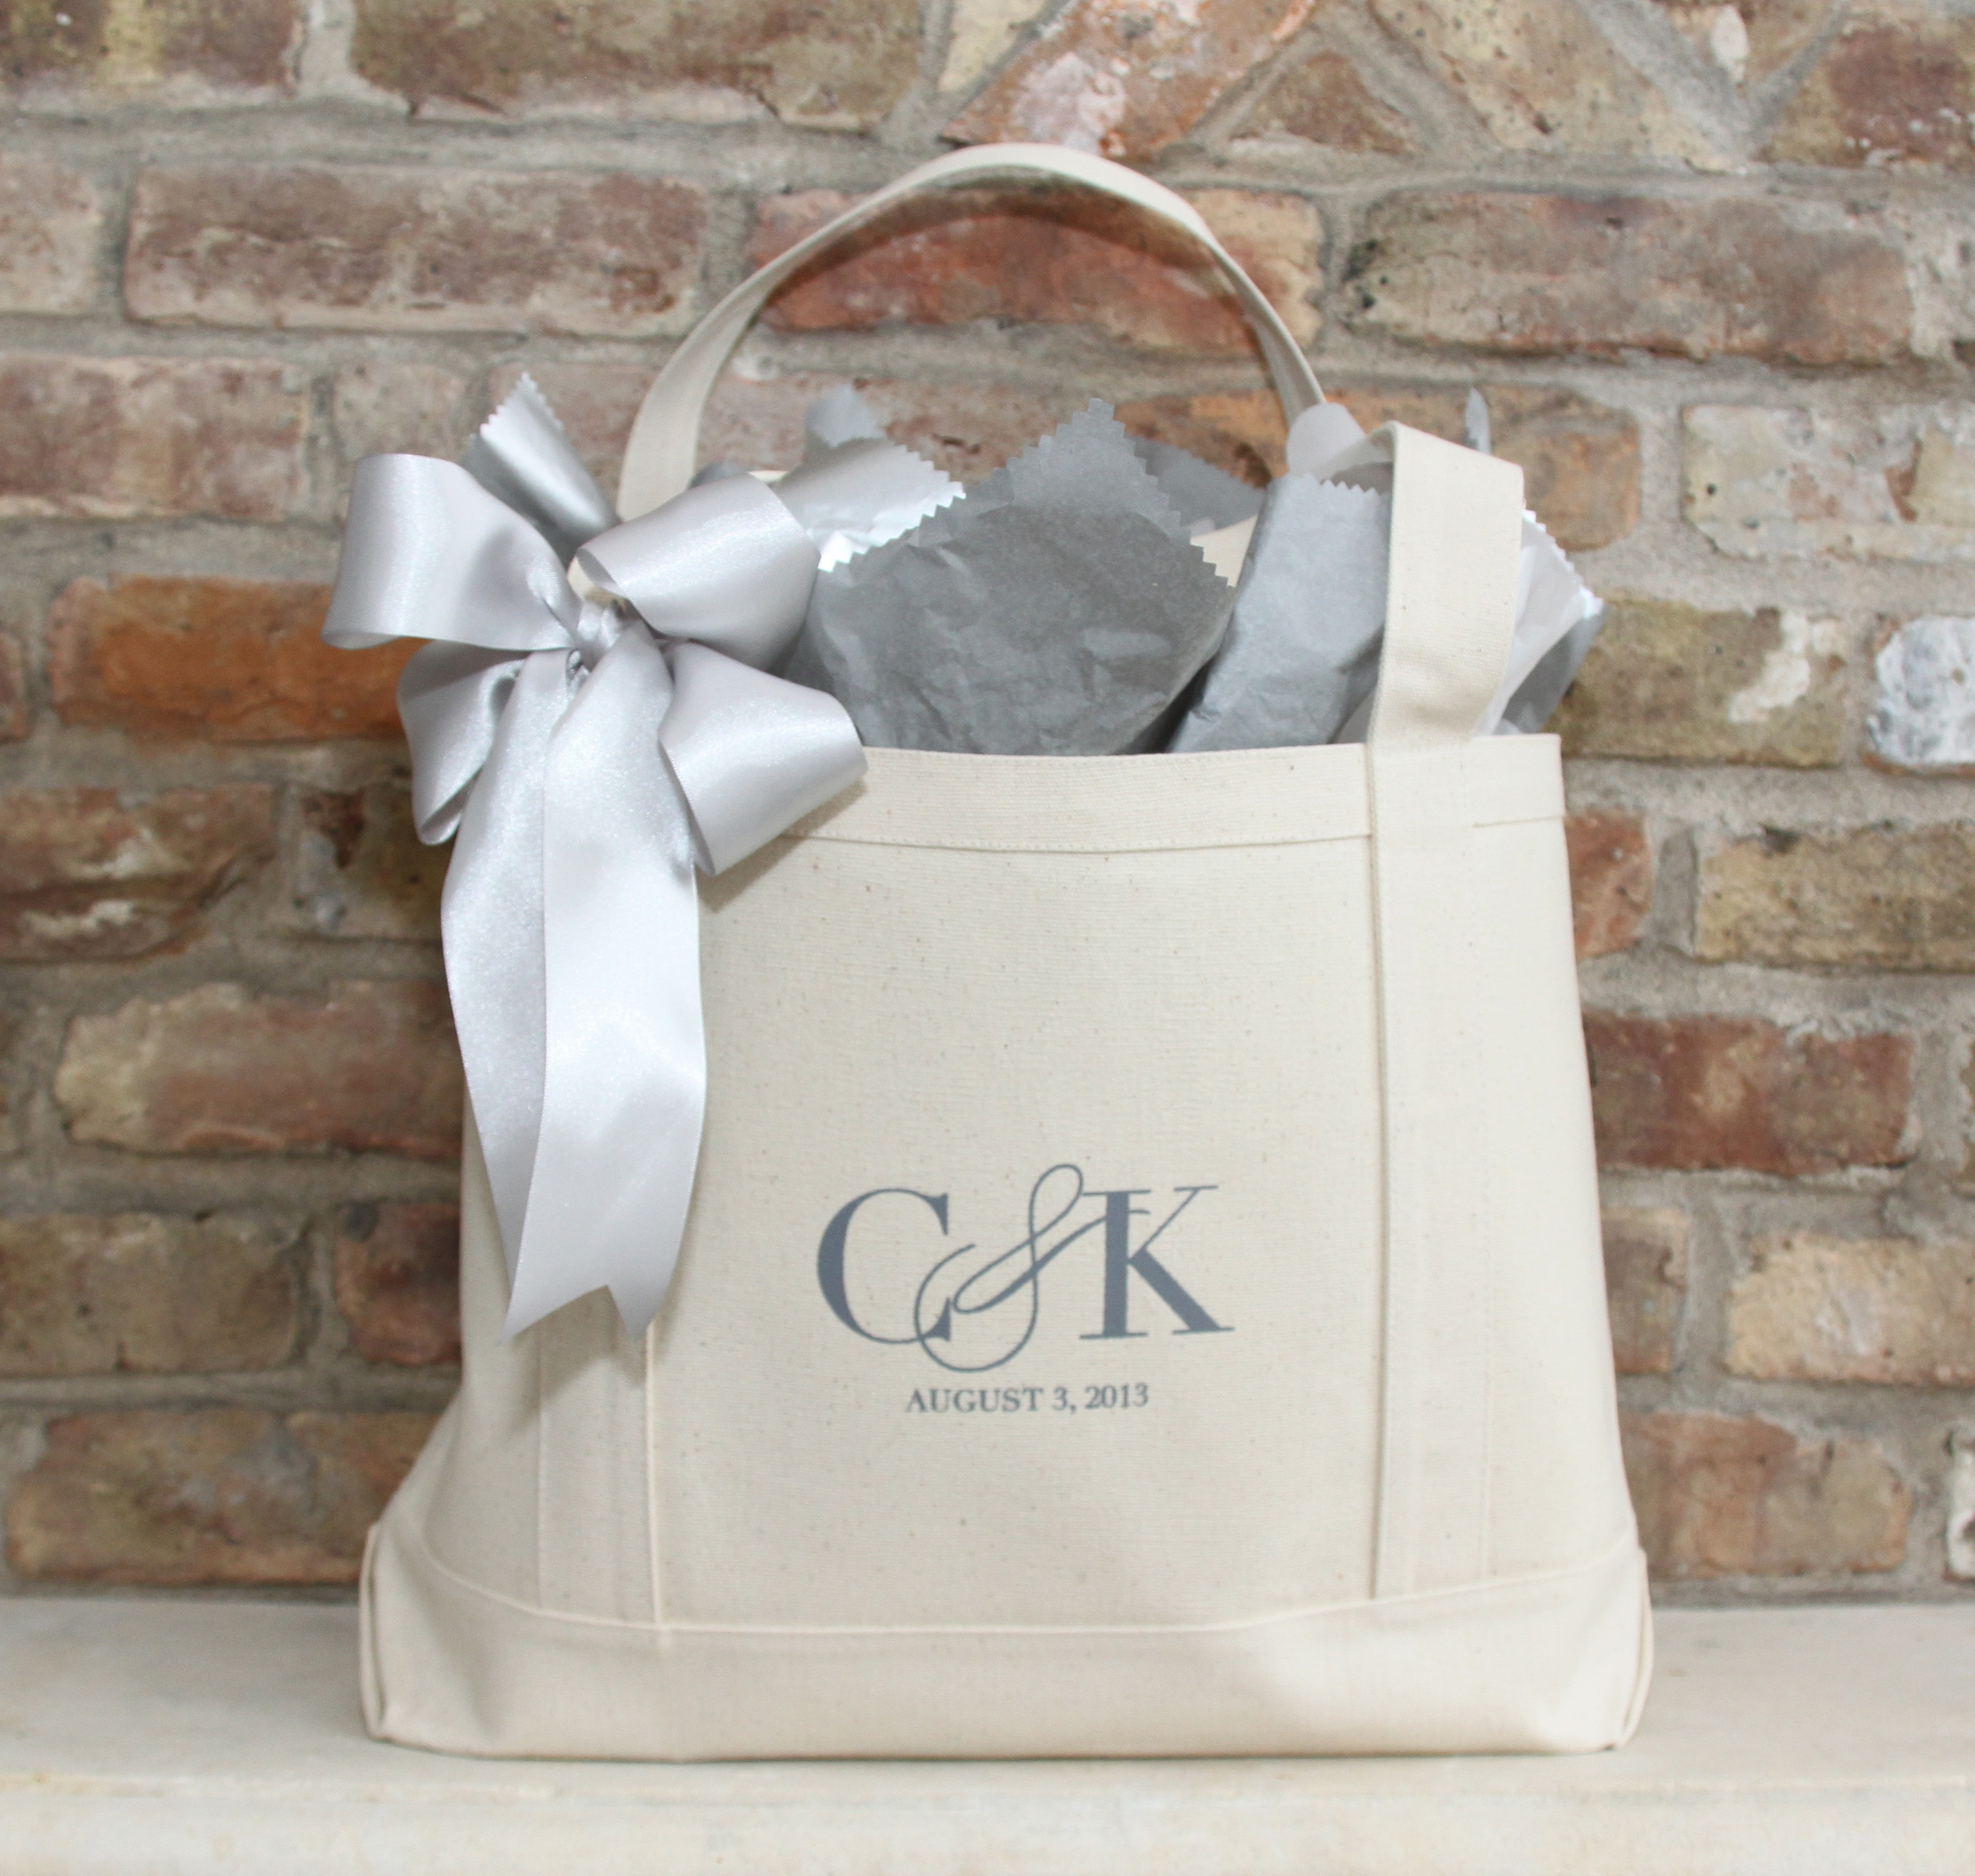 Bridal Show Gift Bag Ideas : Bridal Shower Gift Idea // Custom Tote Bags